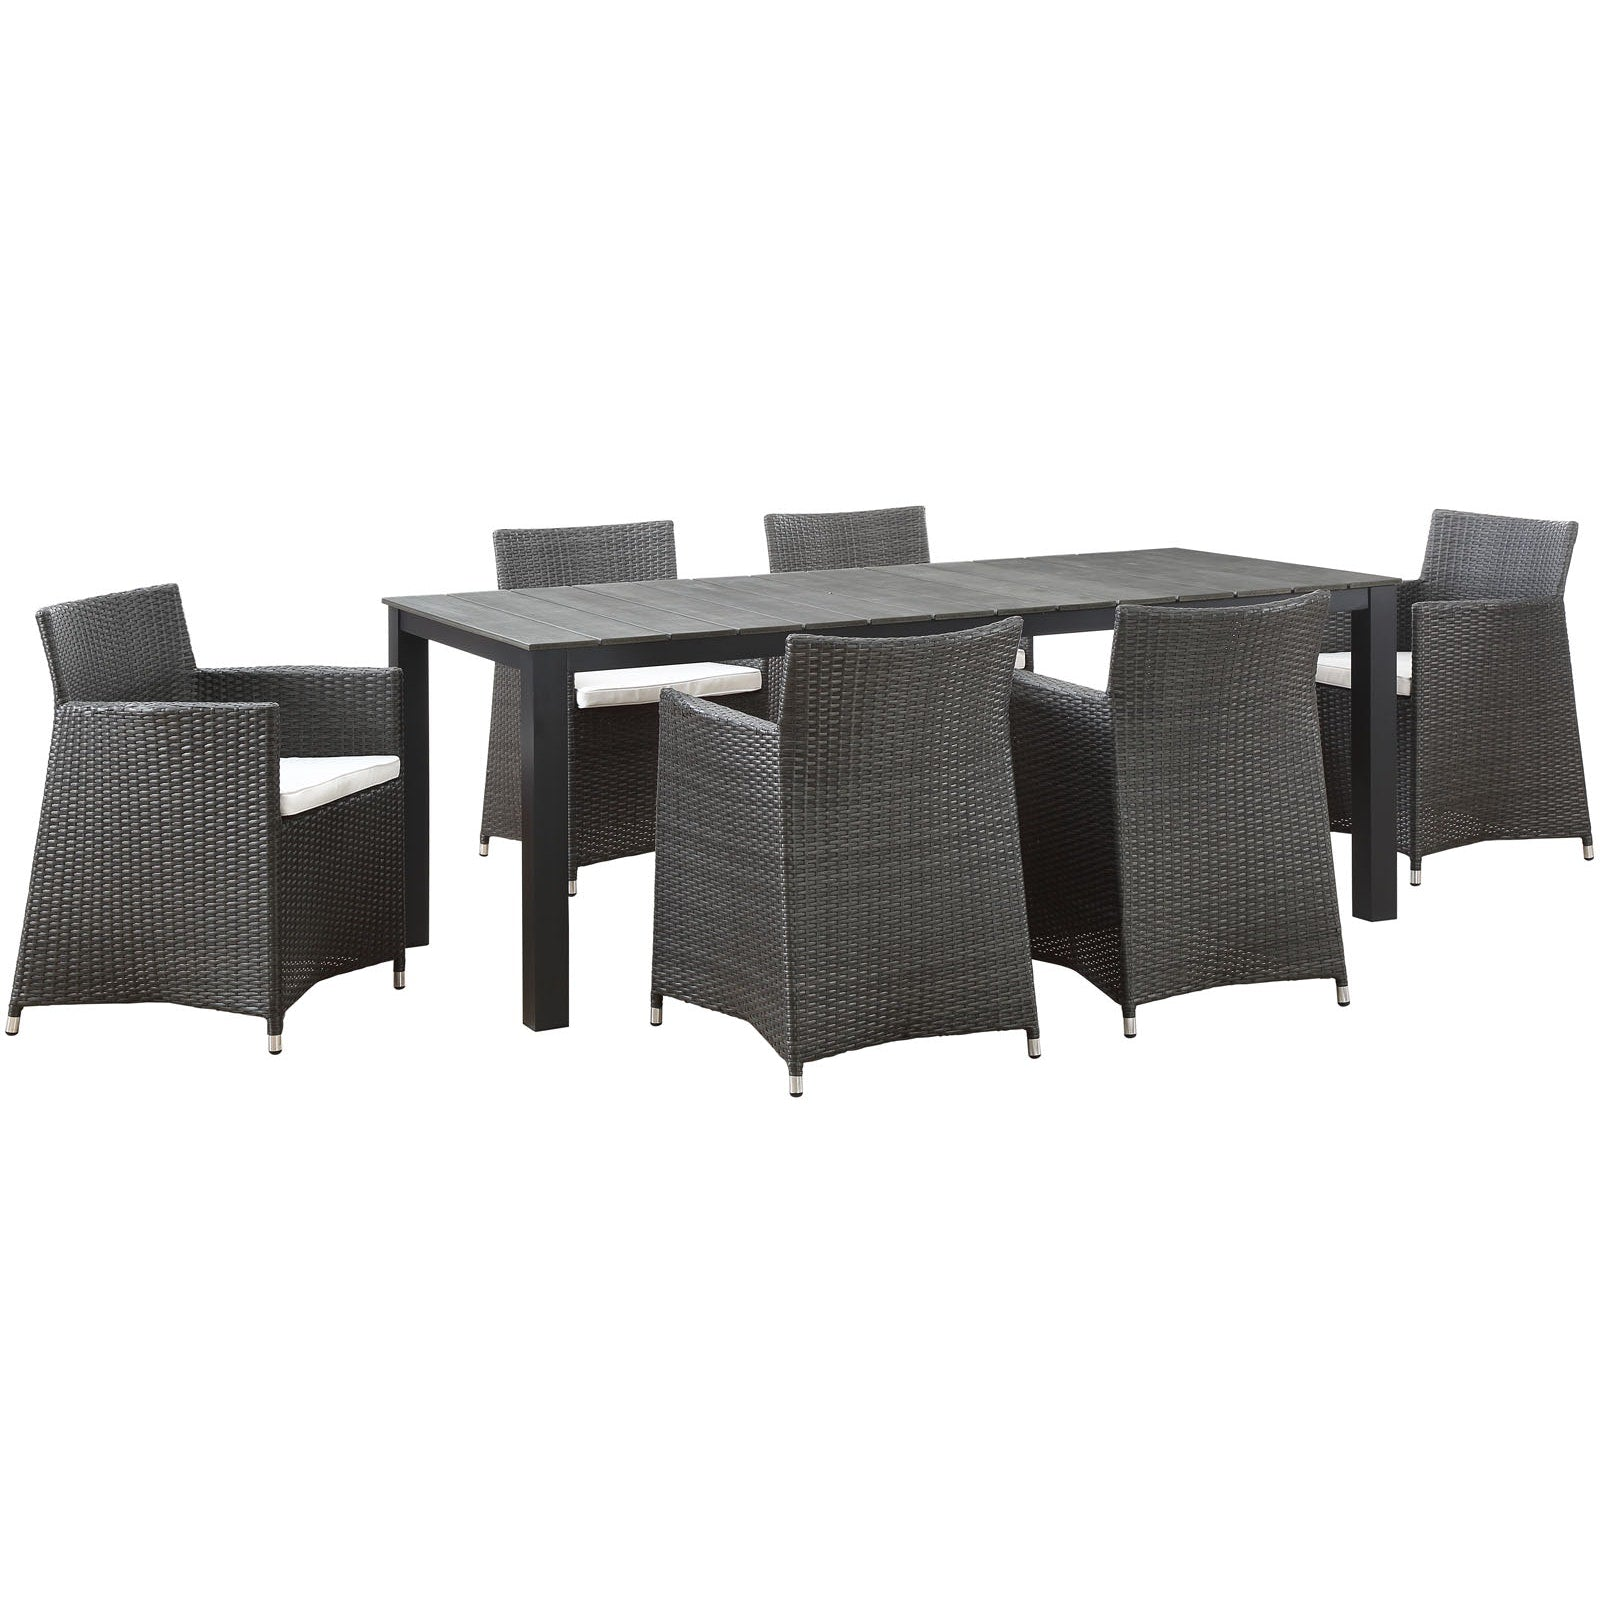 Junction 7 Piece Outdoor Patio Dining Set - Brown White